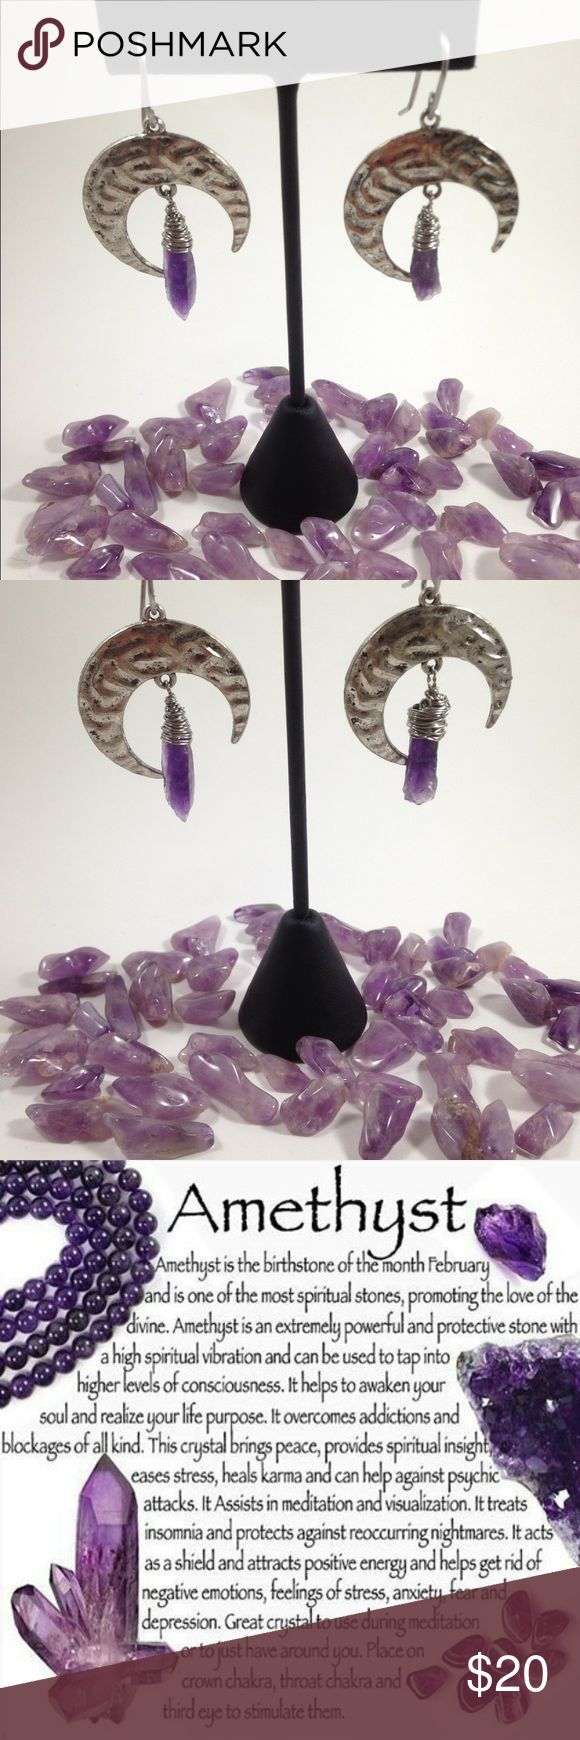 Raw Amethyst Moon Earrings 🔮 Amethyst stones are natural stress relievers with healing properties that rid negative energy and encourage inner strength, wealth, and clarity of the mind.  🔮 Stainless steel hooks and wire  🔮 Pure, Raw Amethysts  🔮 Zinc alloy moon charms Soft.Metal.Alchemist Jewelry Earrings